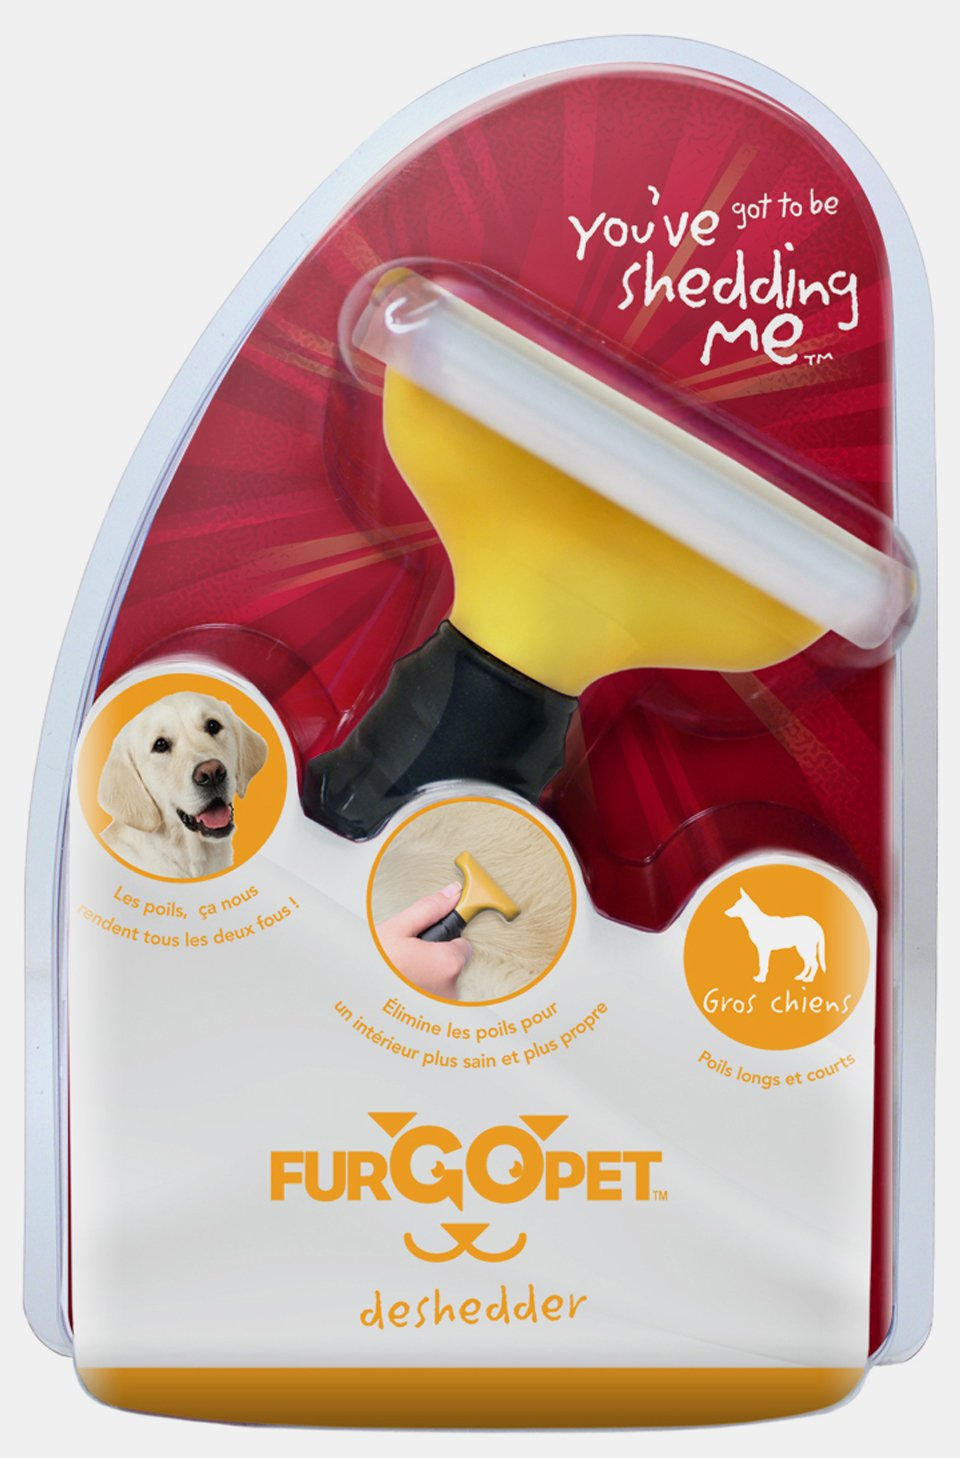 Fur Go Pet 00209 Large Dog FurGoPet Deshedder Tool